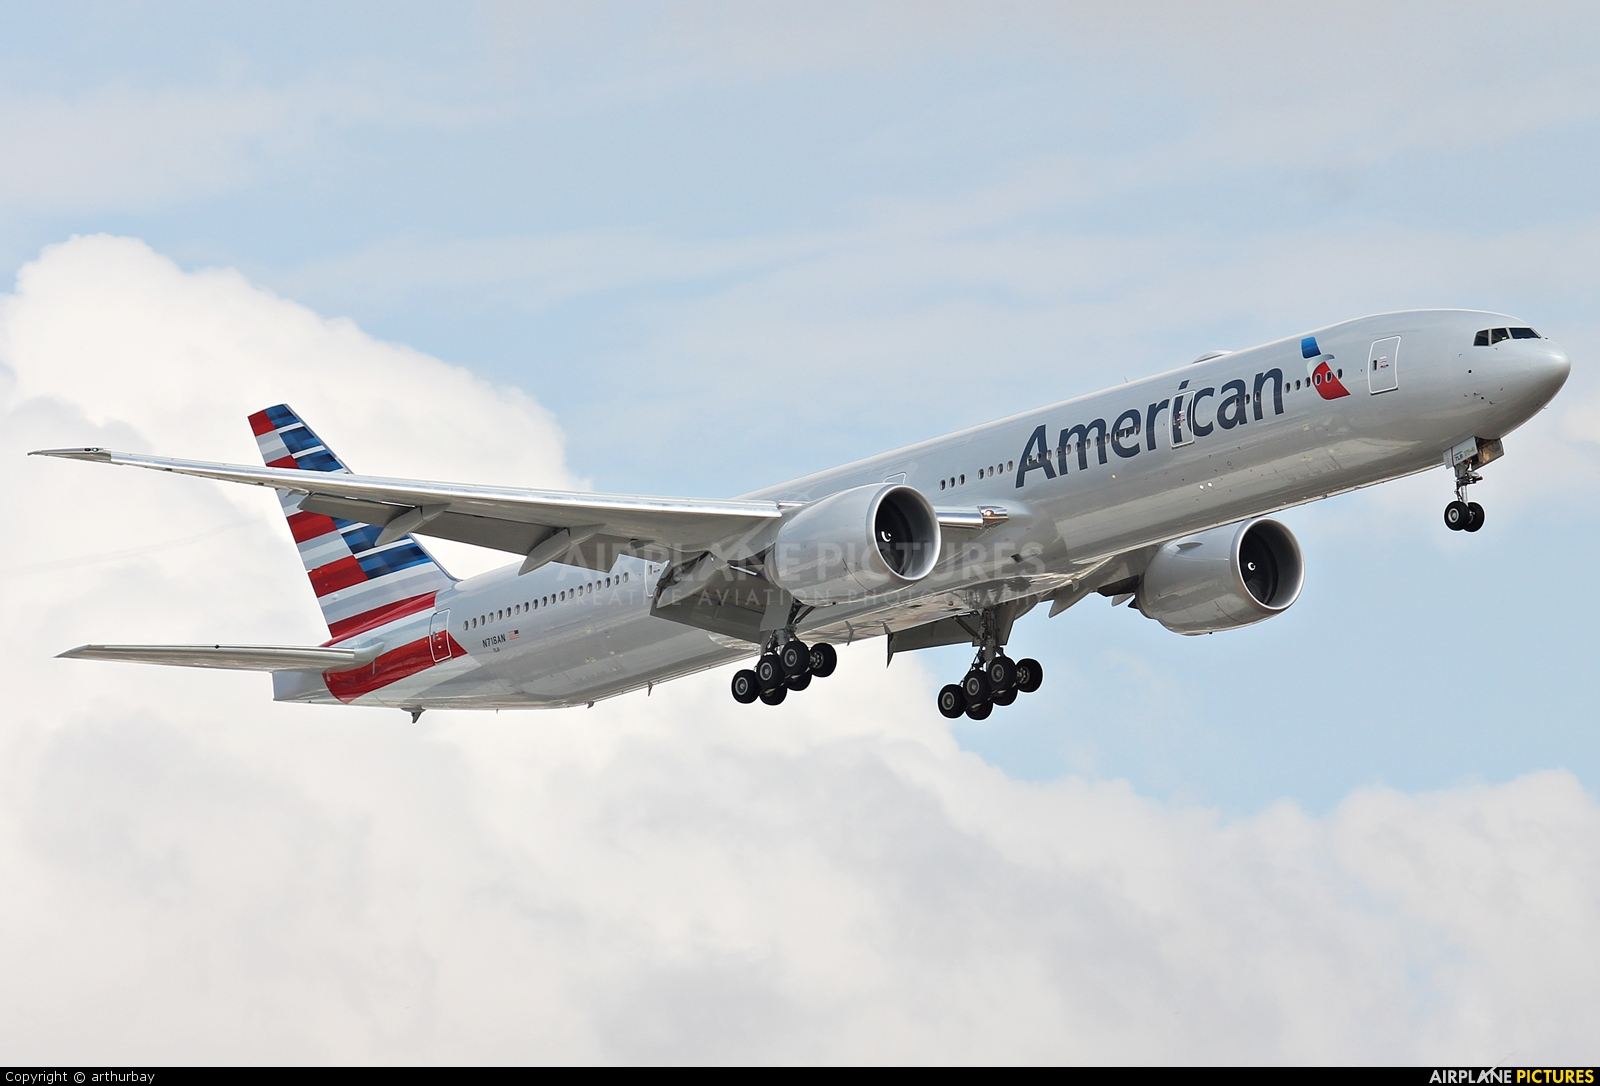 My Top 5 Real World Liveries Real World Aviation